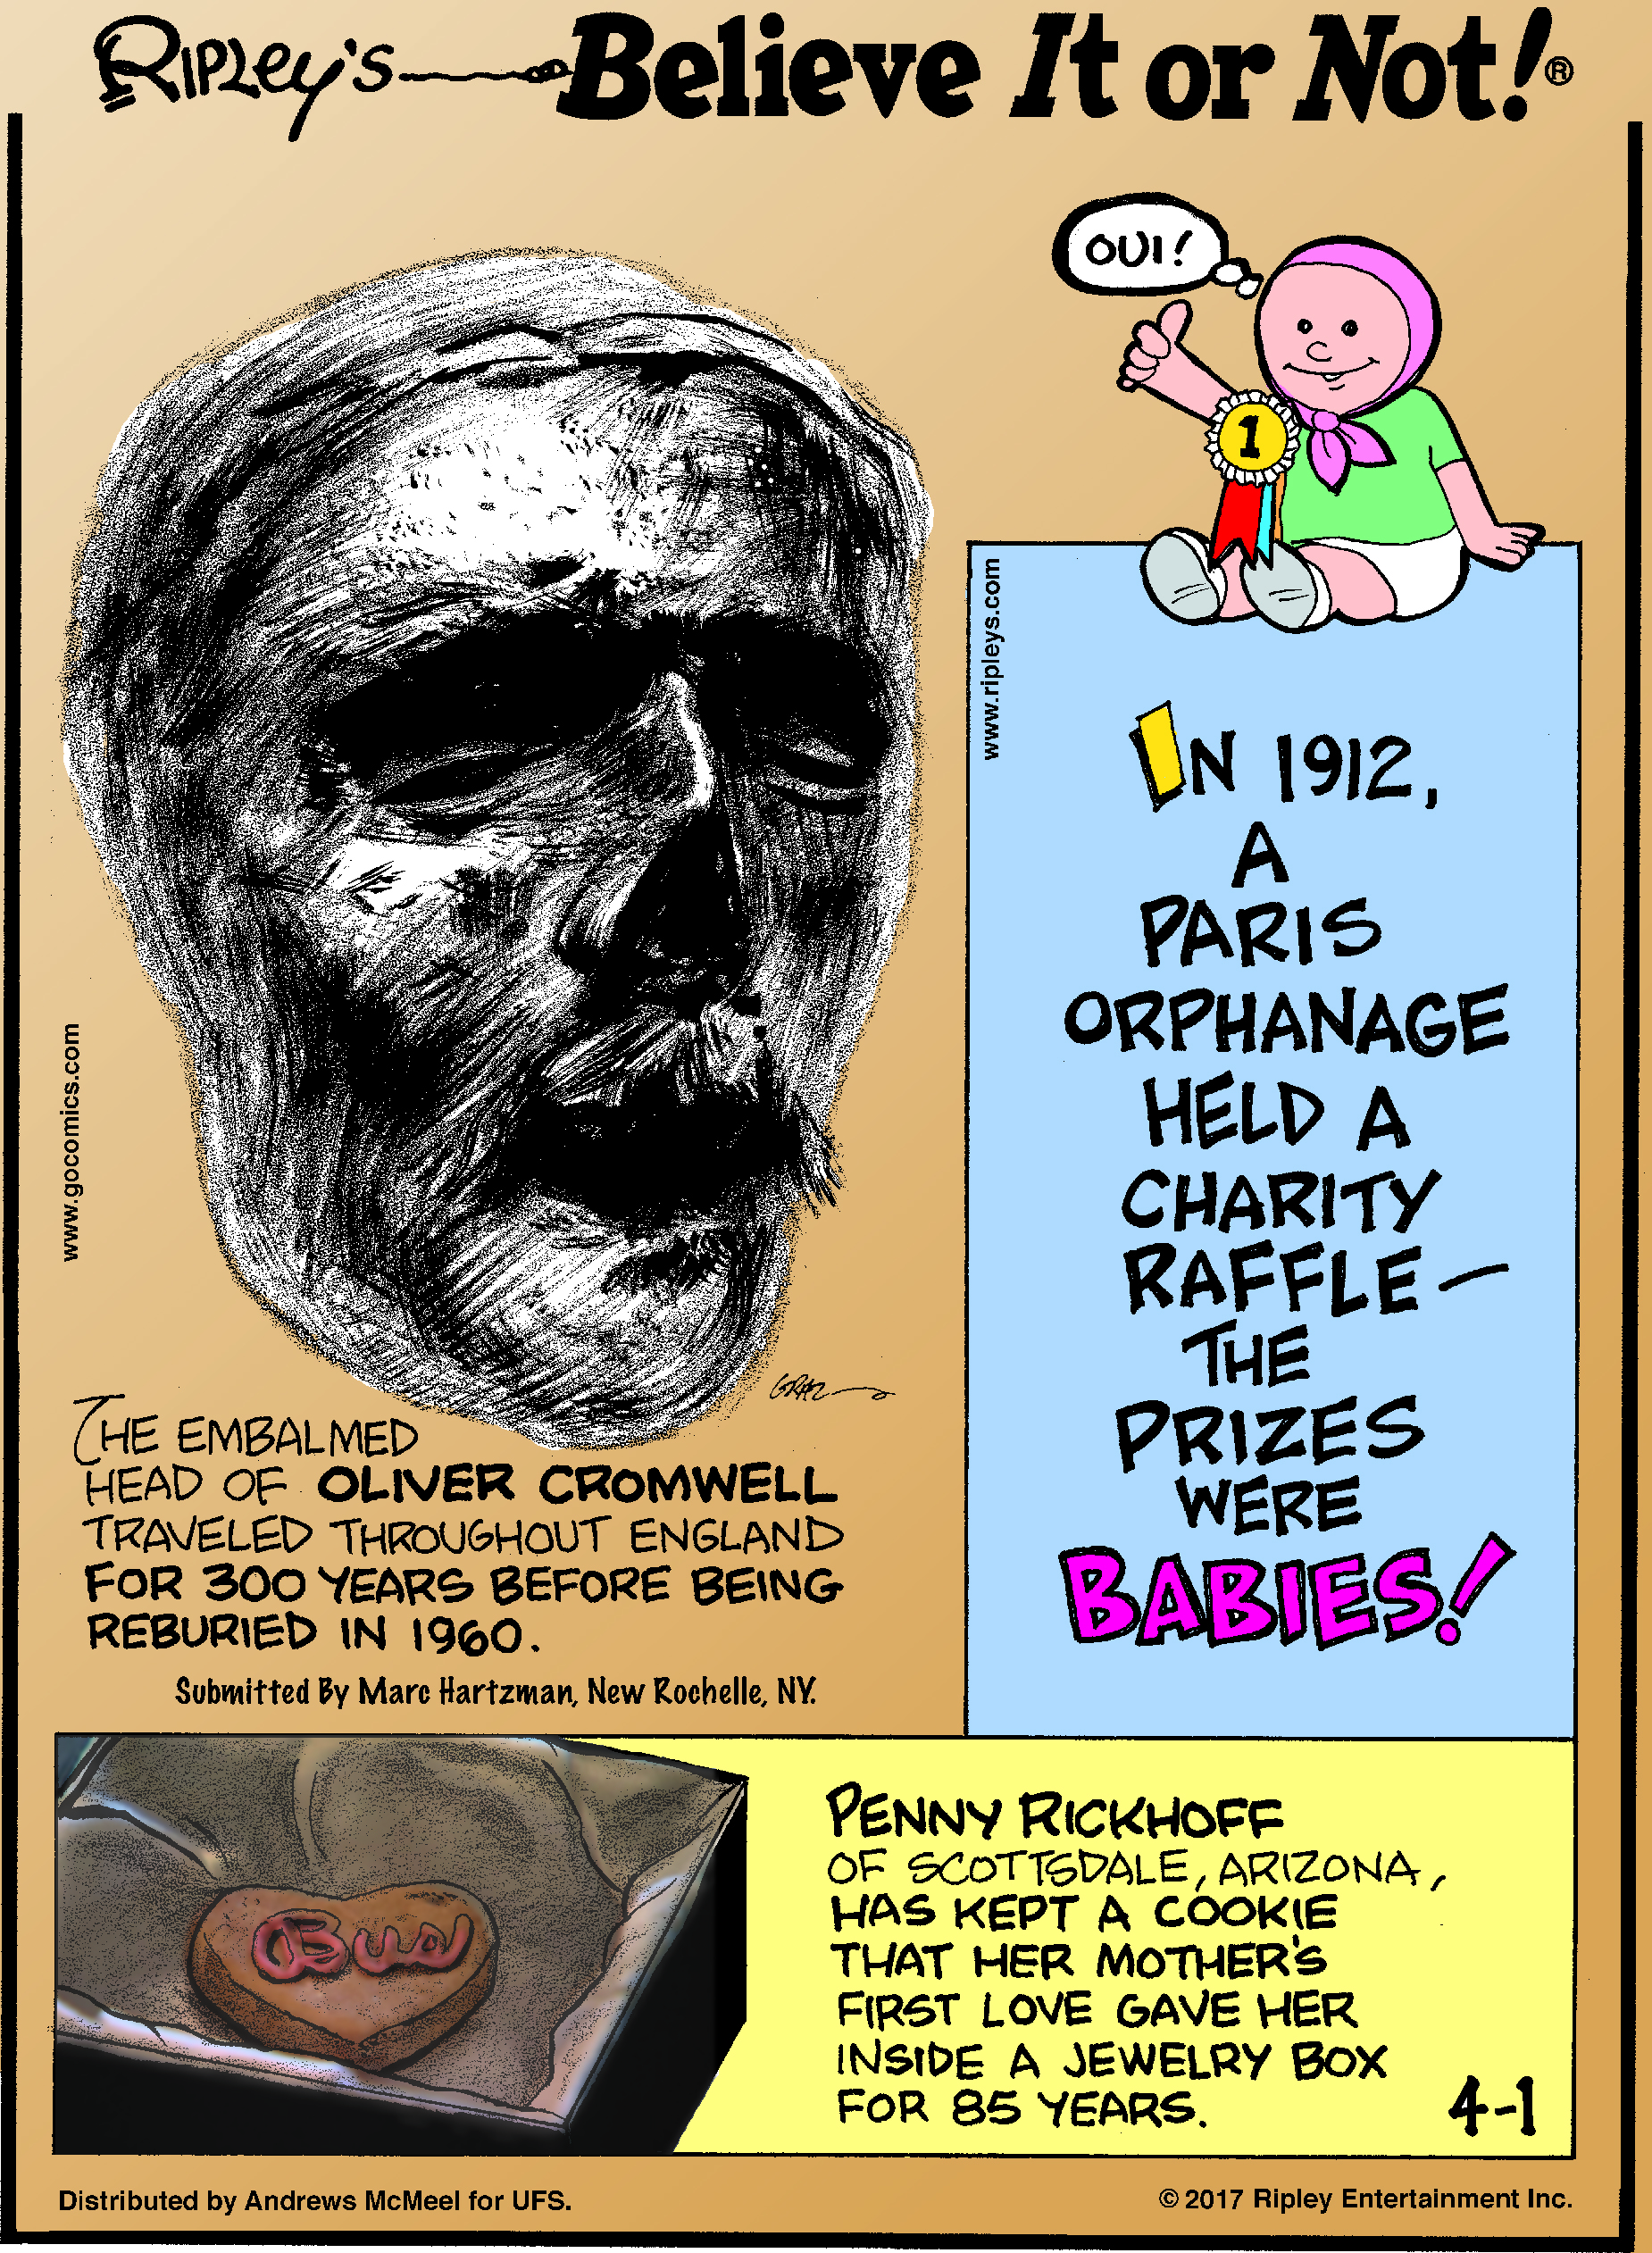 The embalmed head of Oliver Cromwell traveled throughout England for 300 years before being reburied in 1960. Submitted by Marc Hartzman, New Rochelle, NY.-------------------- In 1912, a Paris orphanage held a charity raffle - the prizes were babies!-------------------- Penny Rickhoff of Scottsdale, Arizona, has kept a cookie that her mother's first love gave her inside a jewelry box for 85 years.